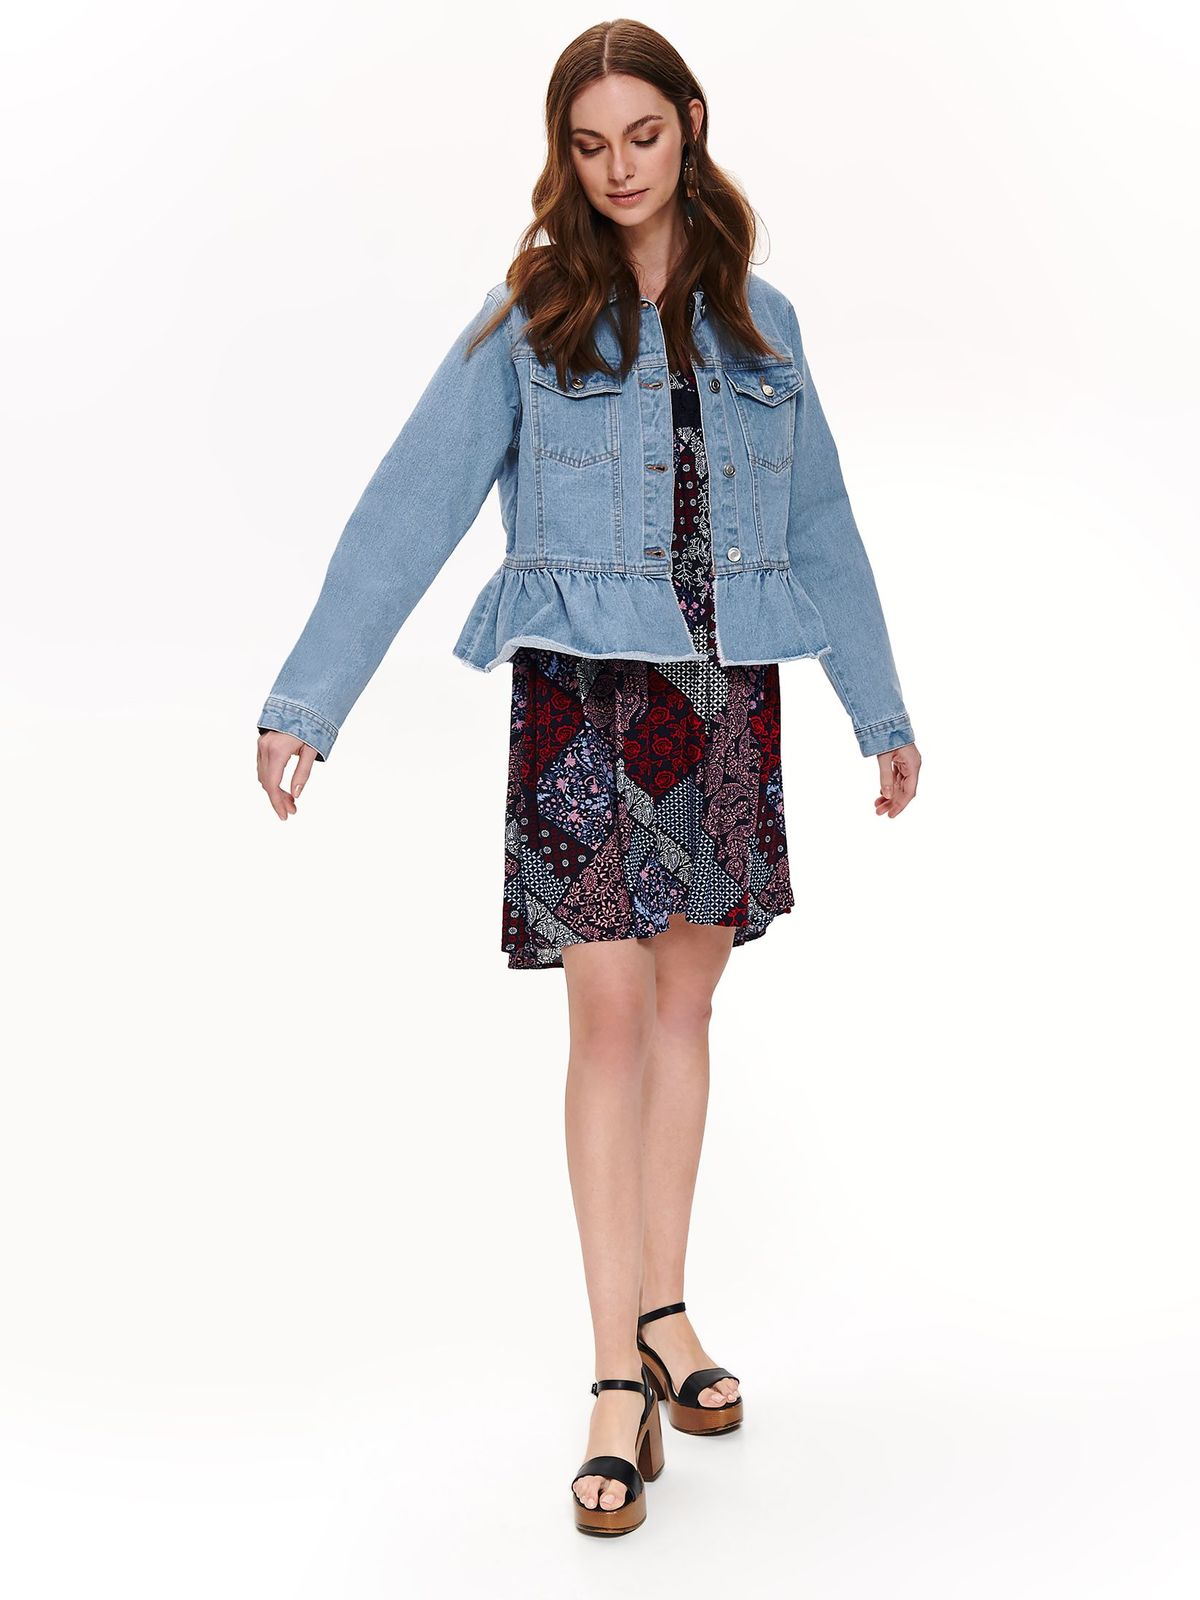 Top Secret blue casual denim jacket with straight cut with ruffle details